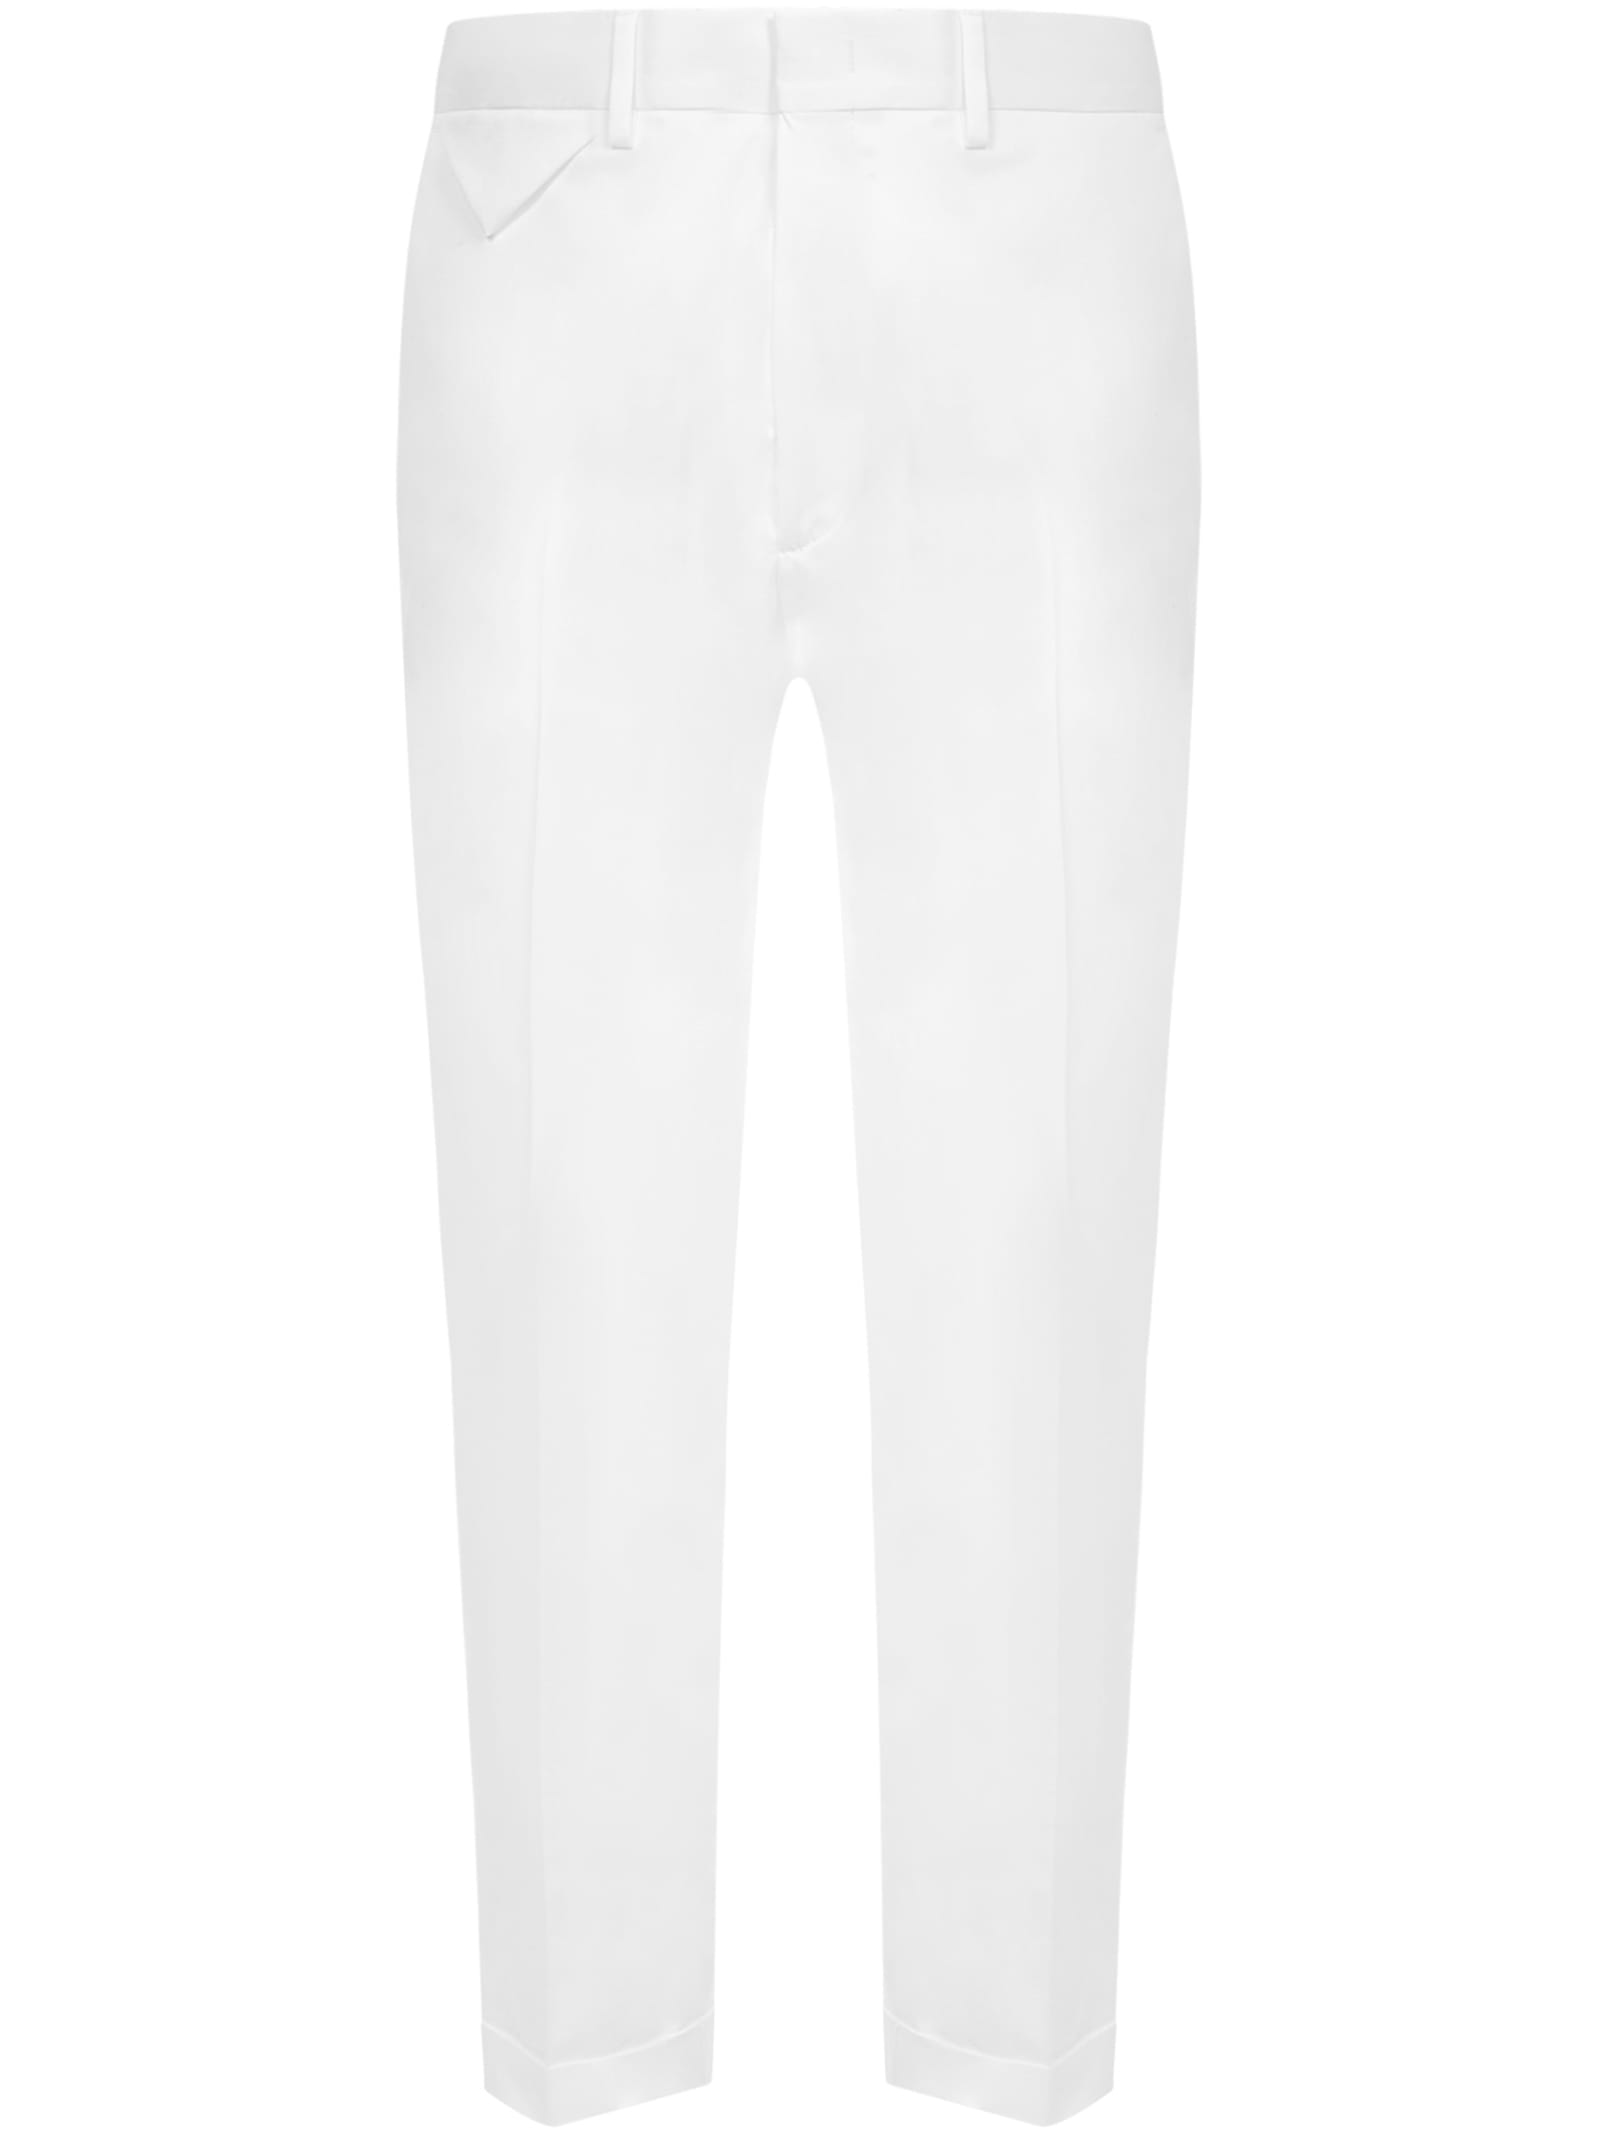 Low Brand Trousers